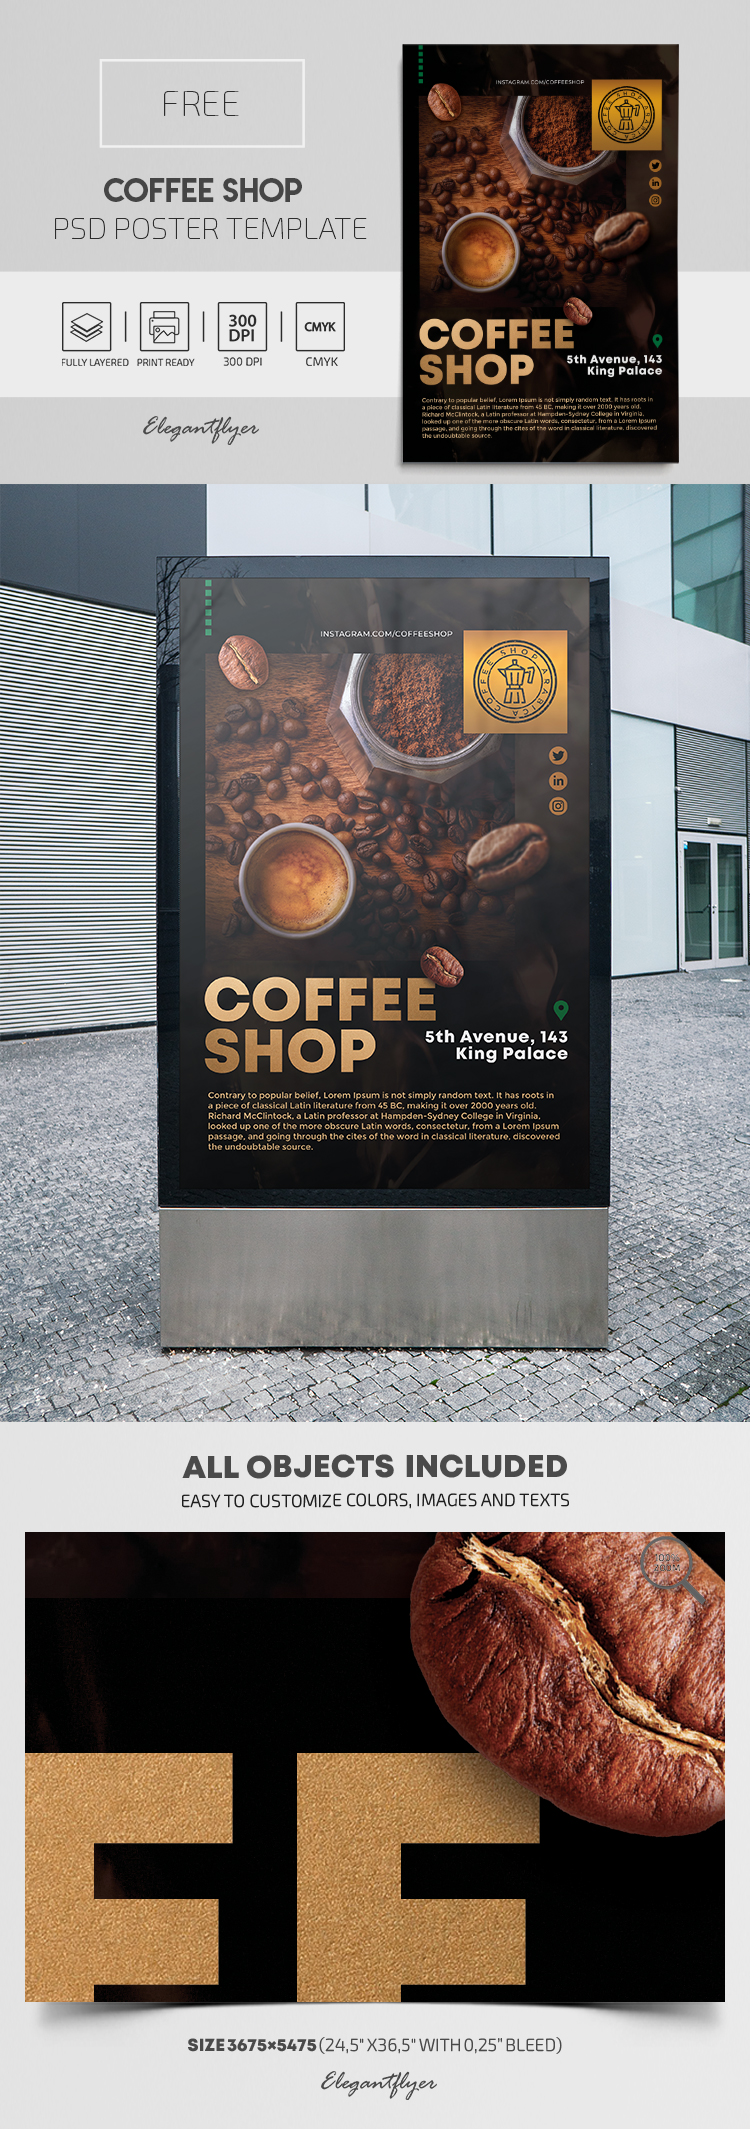 Coffee Shop – Free PSD Poster Template